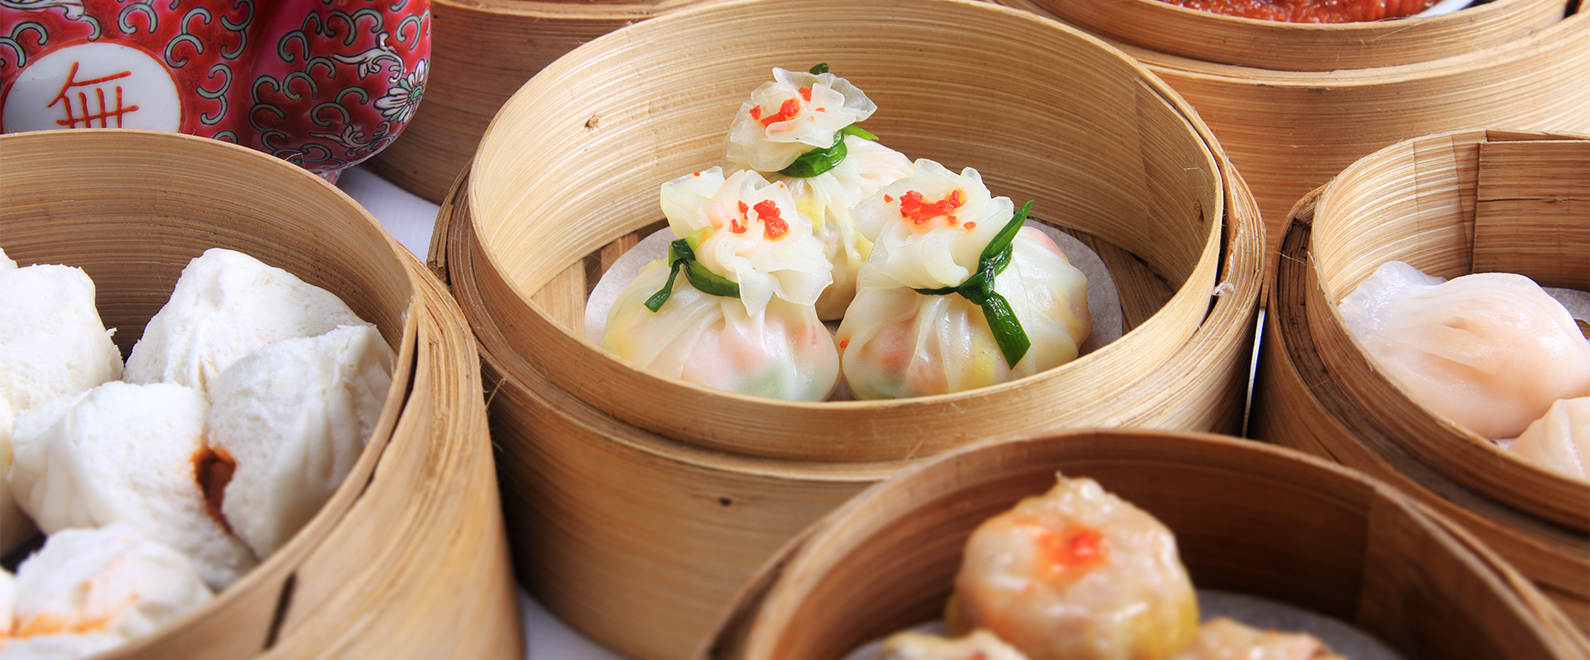 Southern Chinese Cuisine